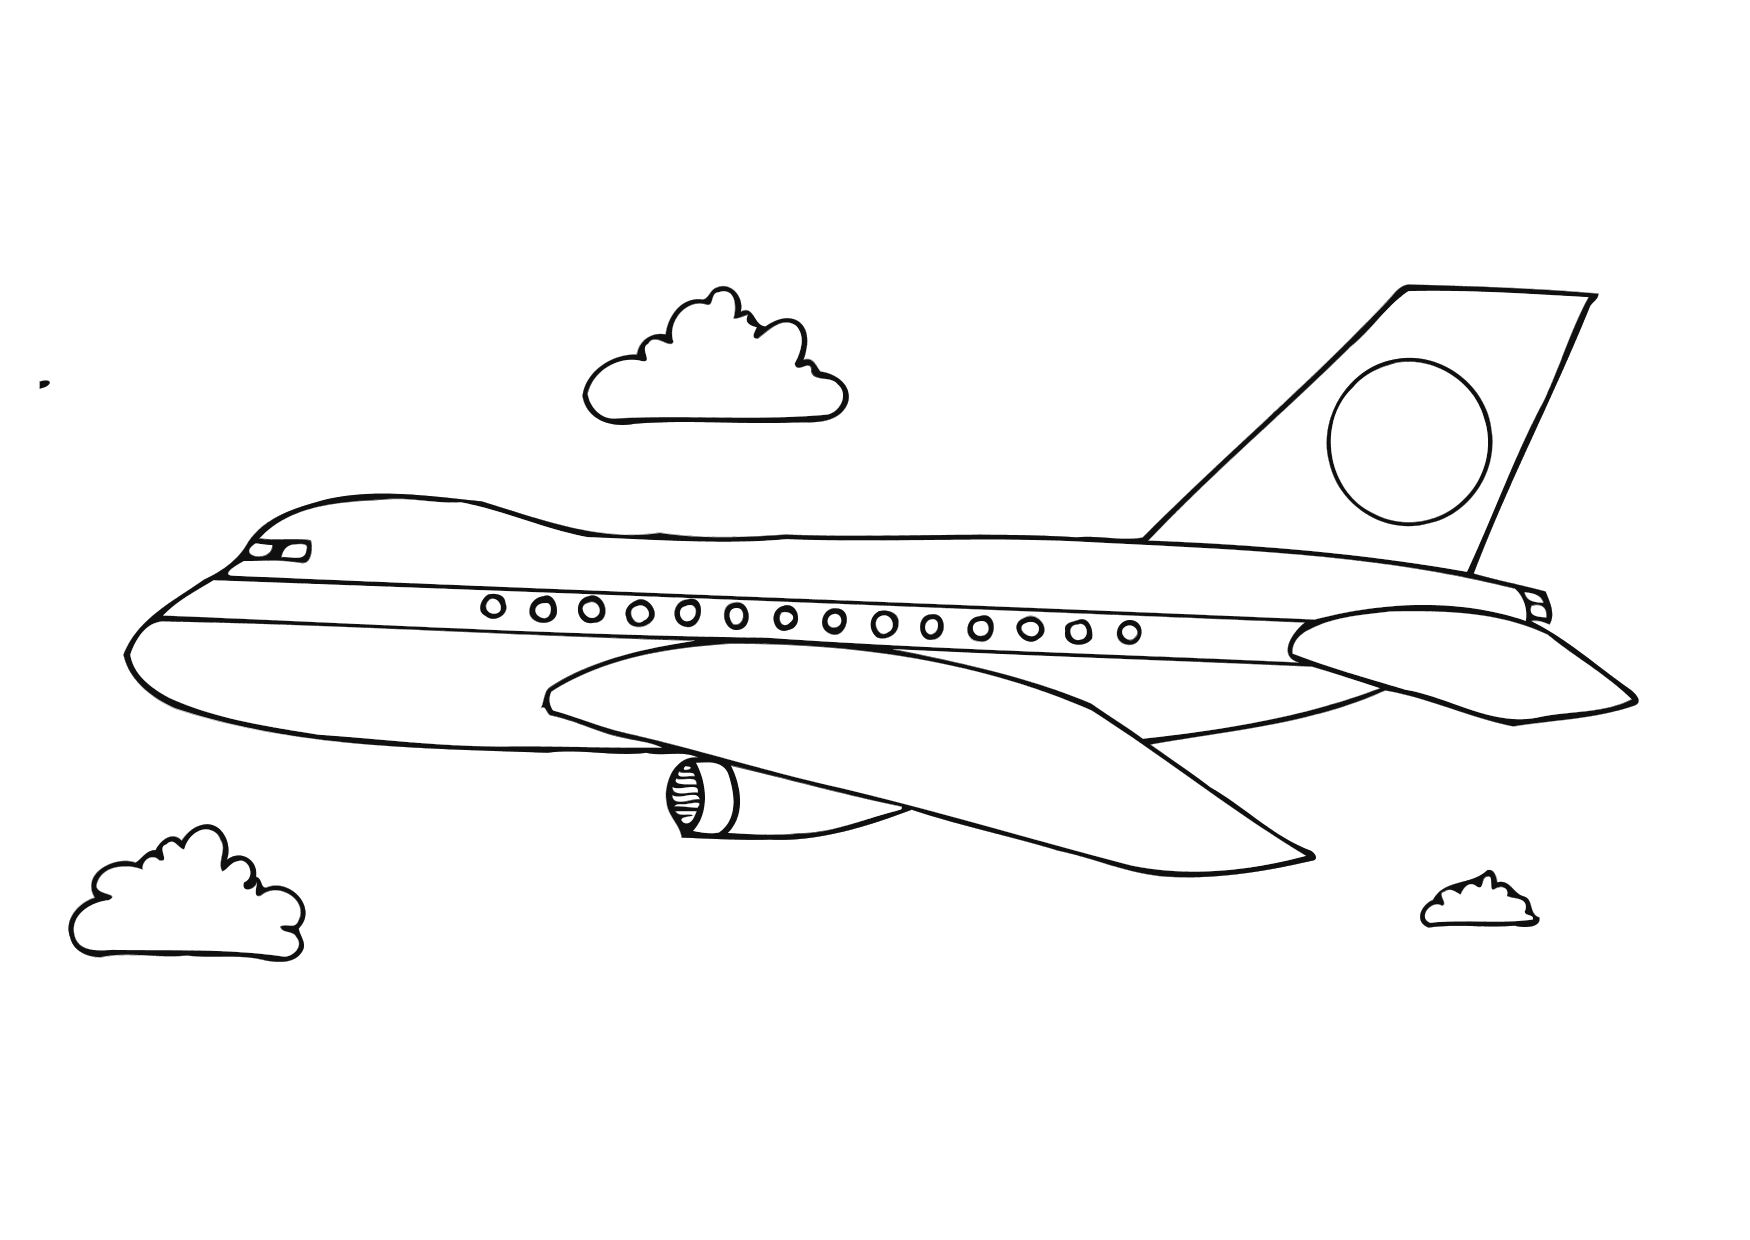 key coloring pages preschool airplanes - photo#25